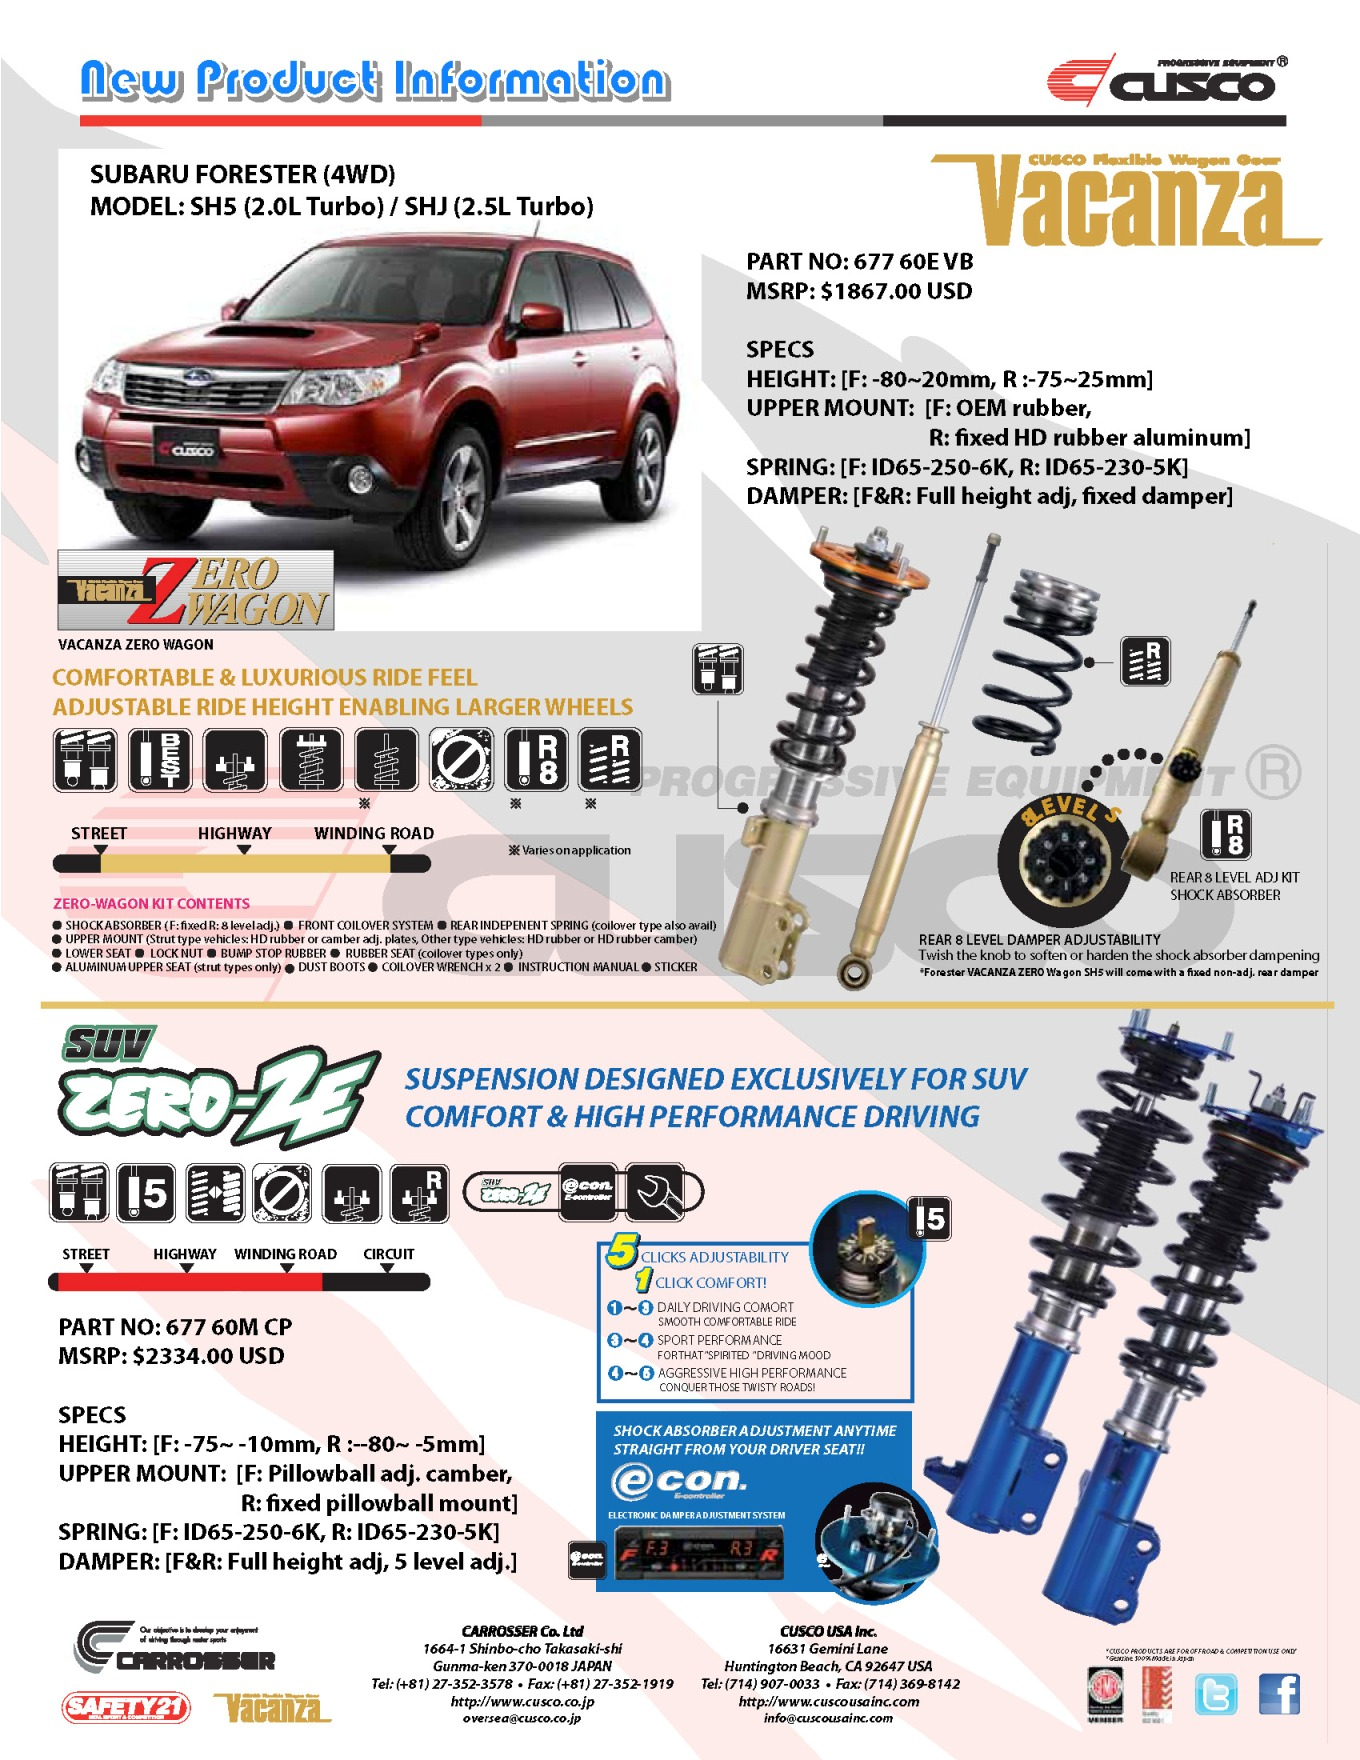 SUBARU Forester SH5 & SHJ Coilover Suspension